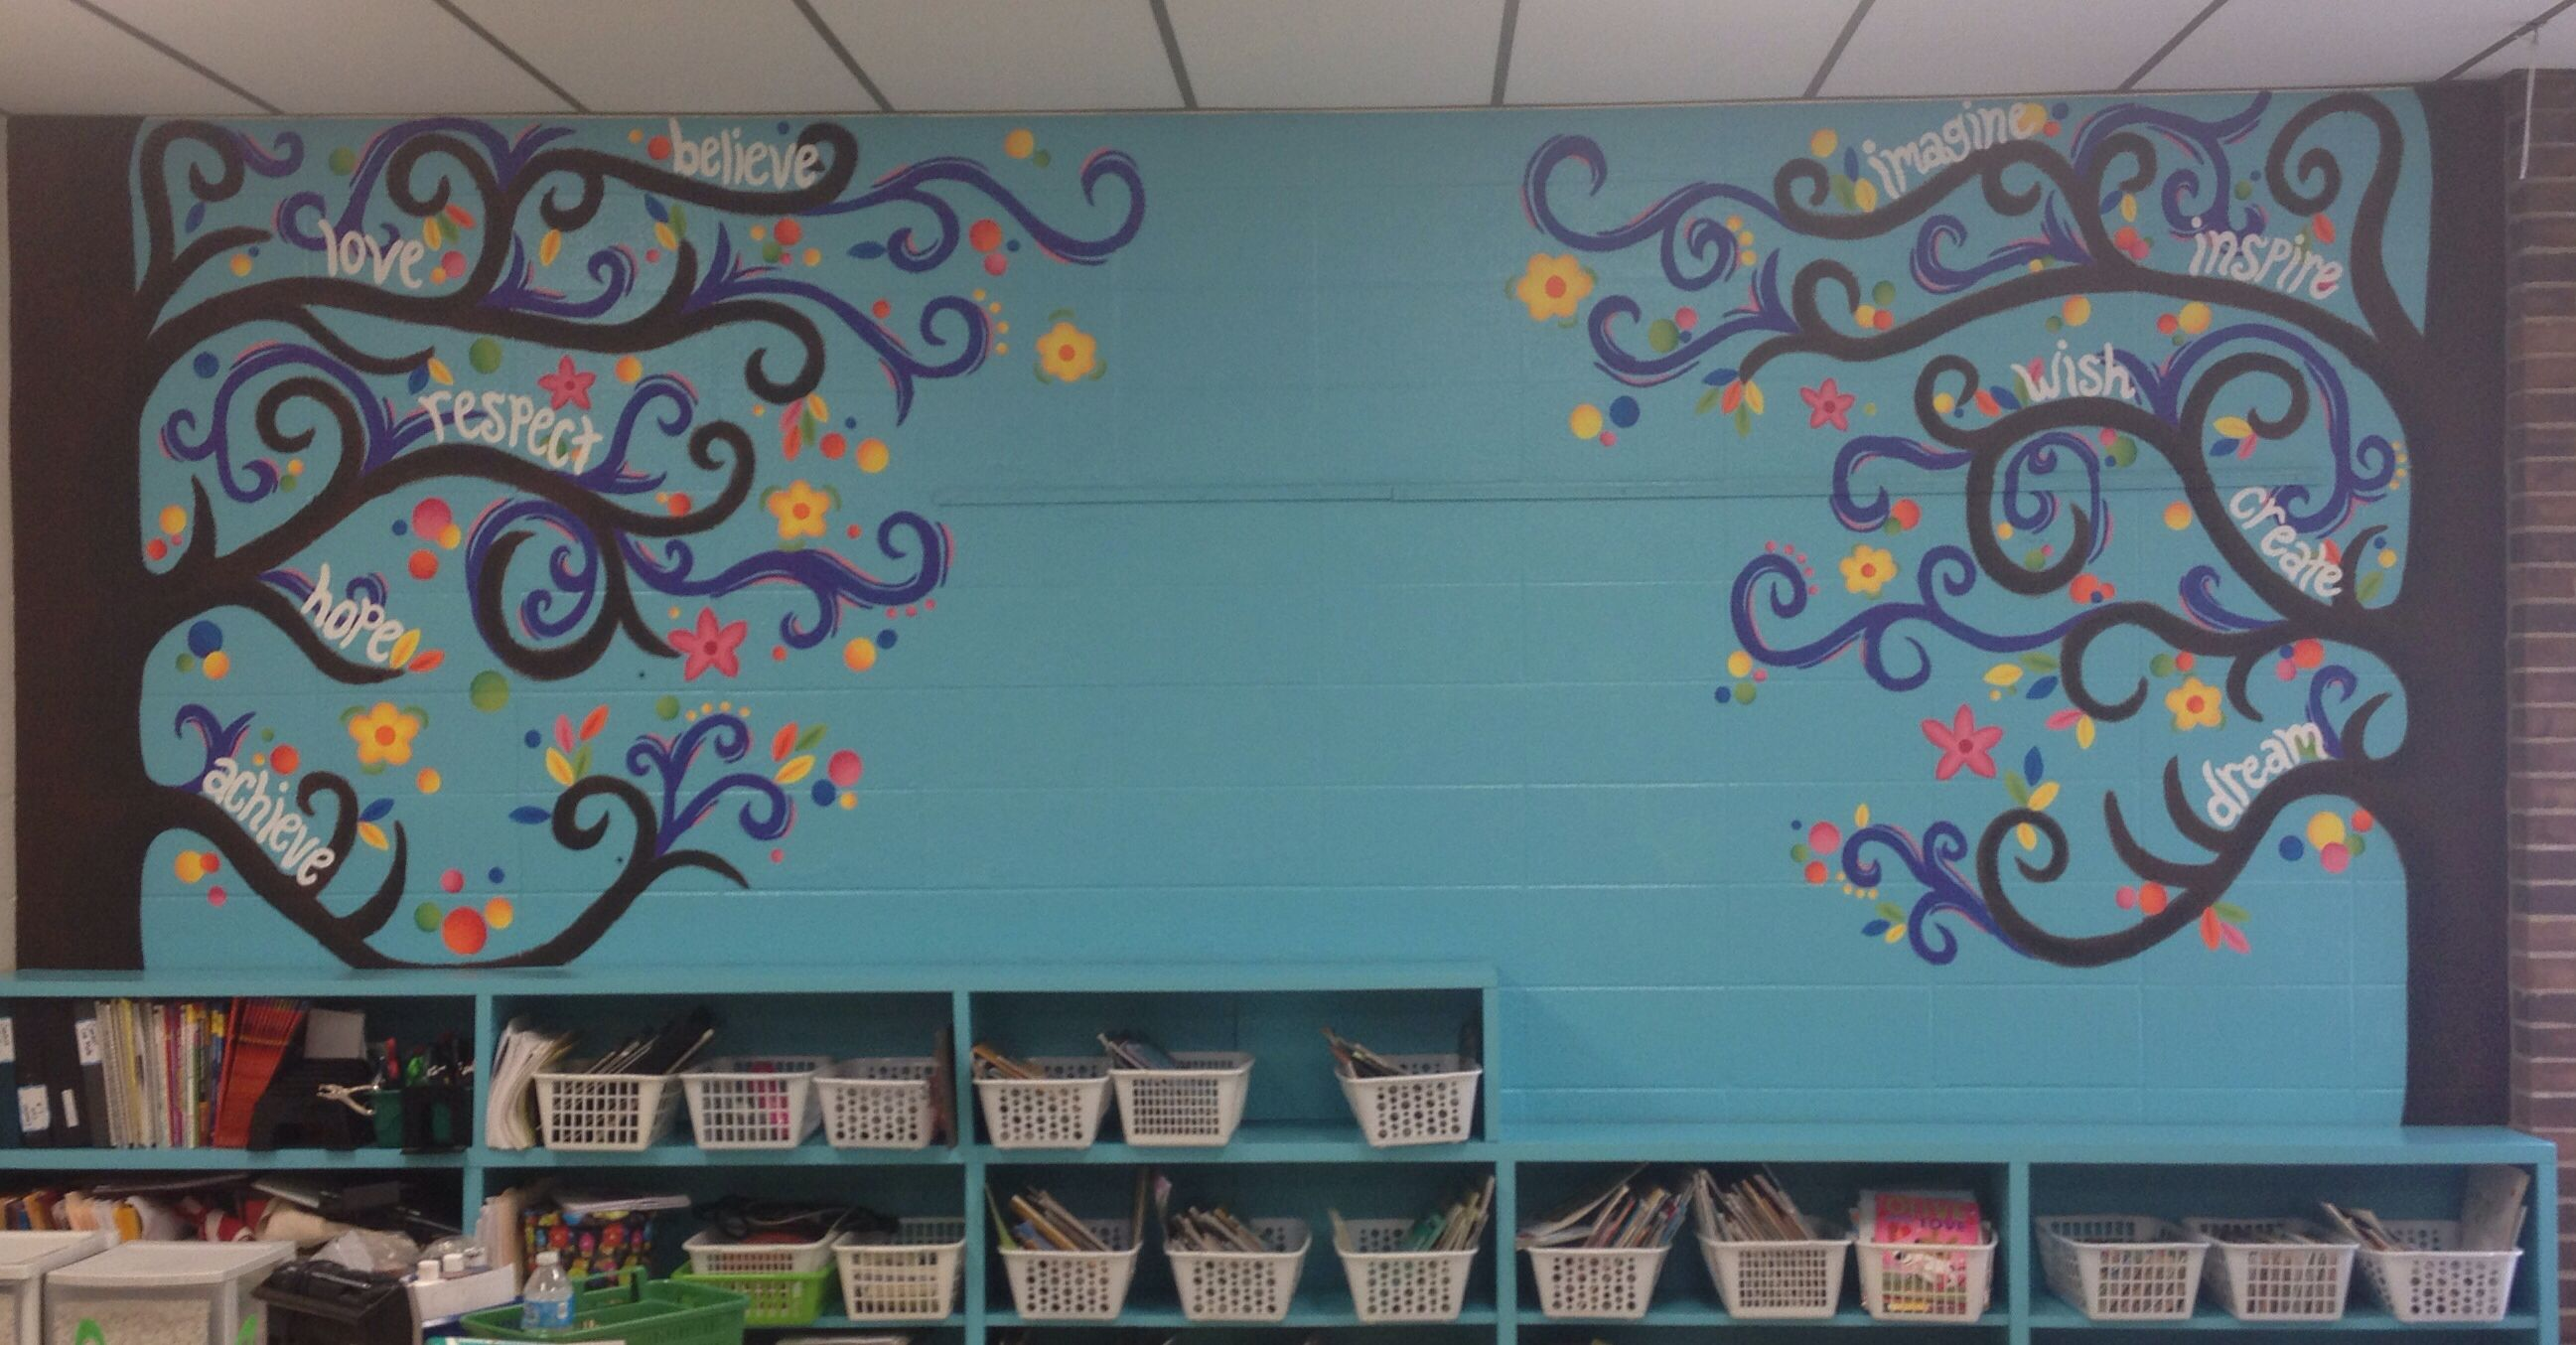 Classroom mural designs pictures to pin on pinterest for Educational mural